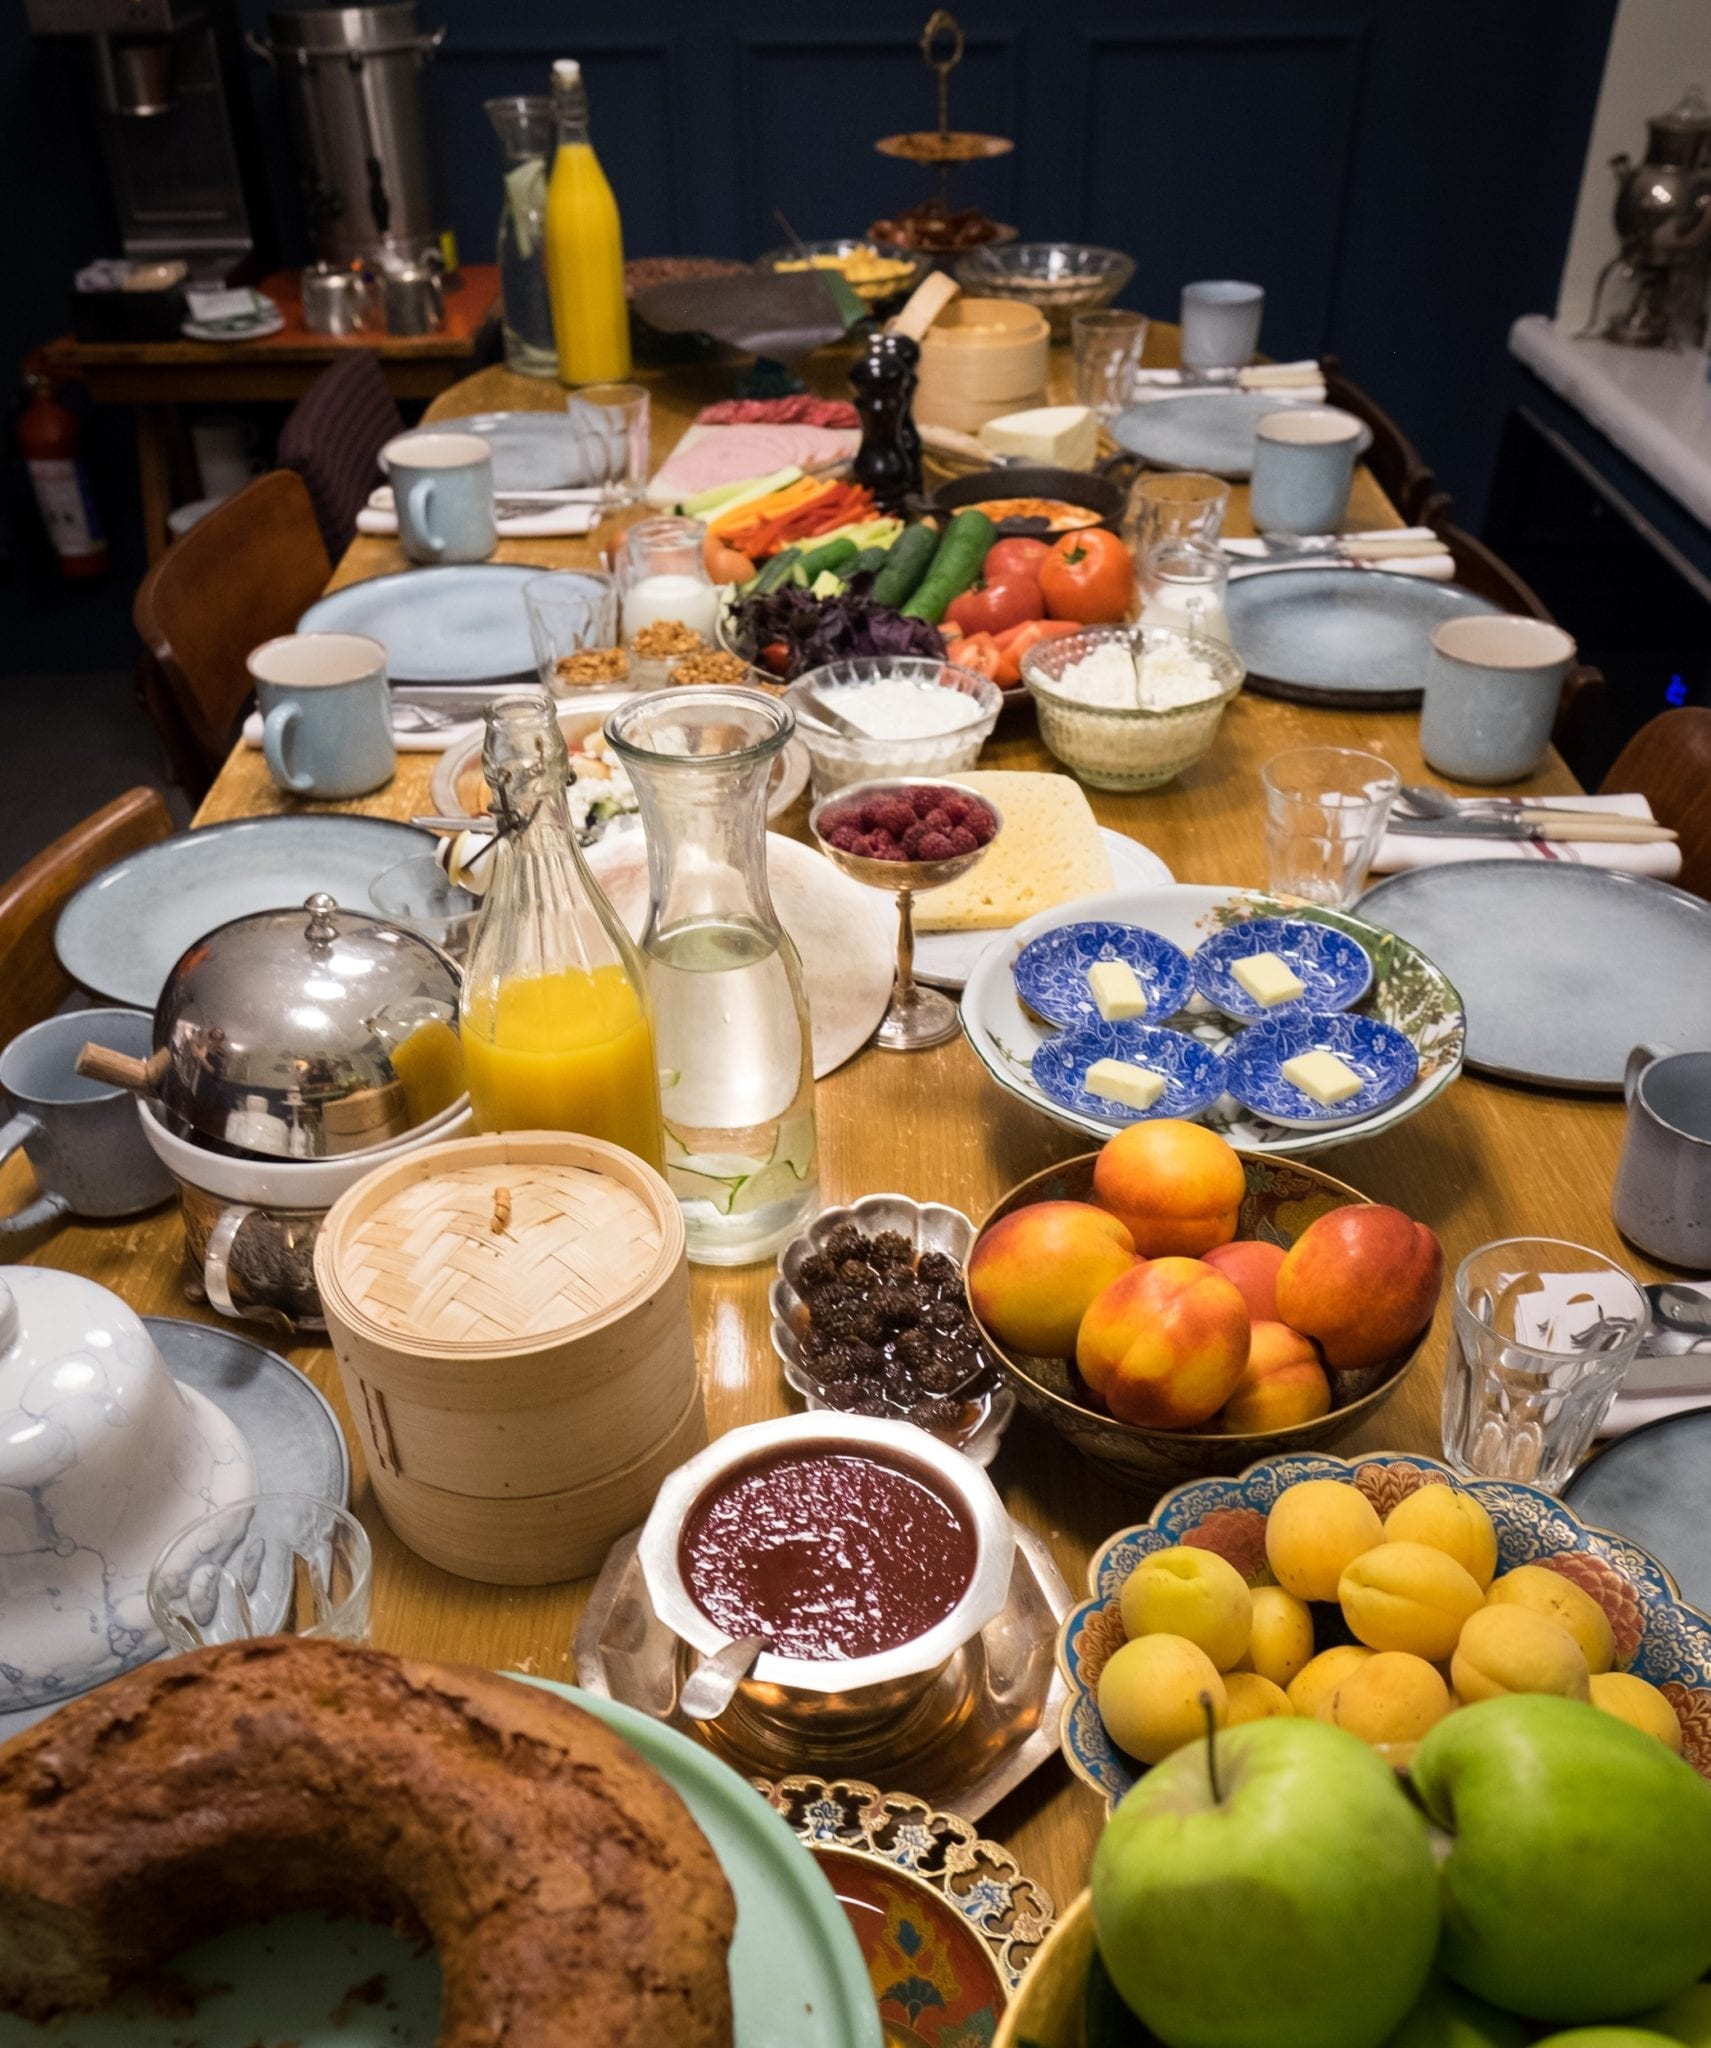 A long table brimming with breakfast: breads, fruits, pastries, cheeses, jams, all served in gorgeous blue and white dishes.